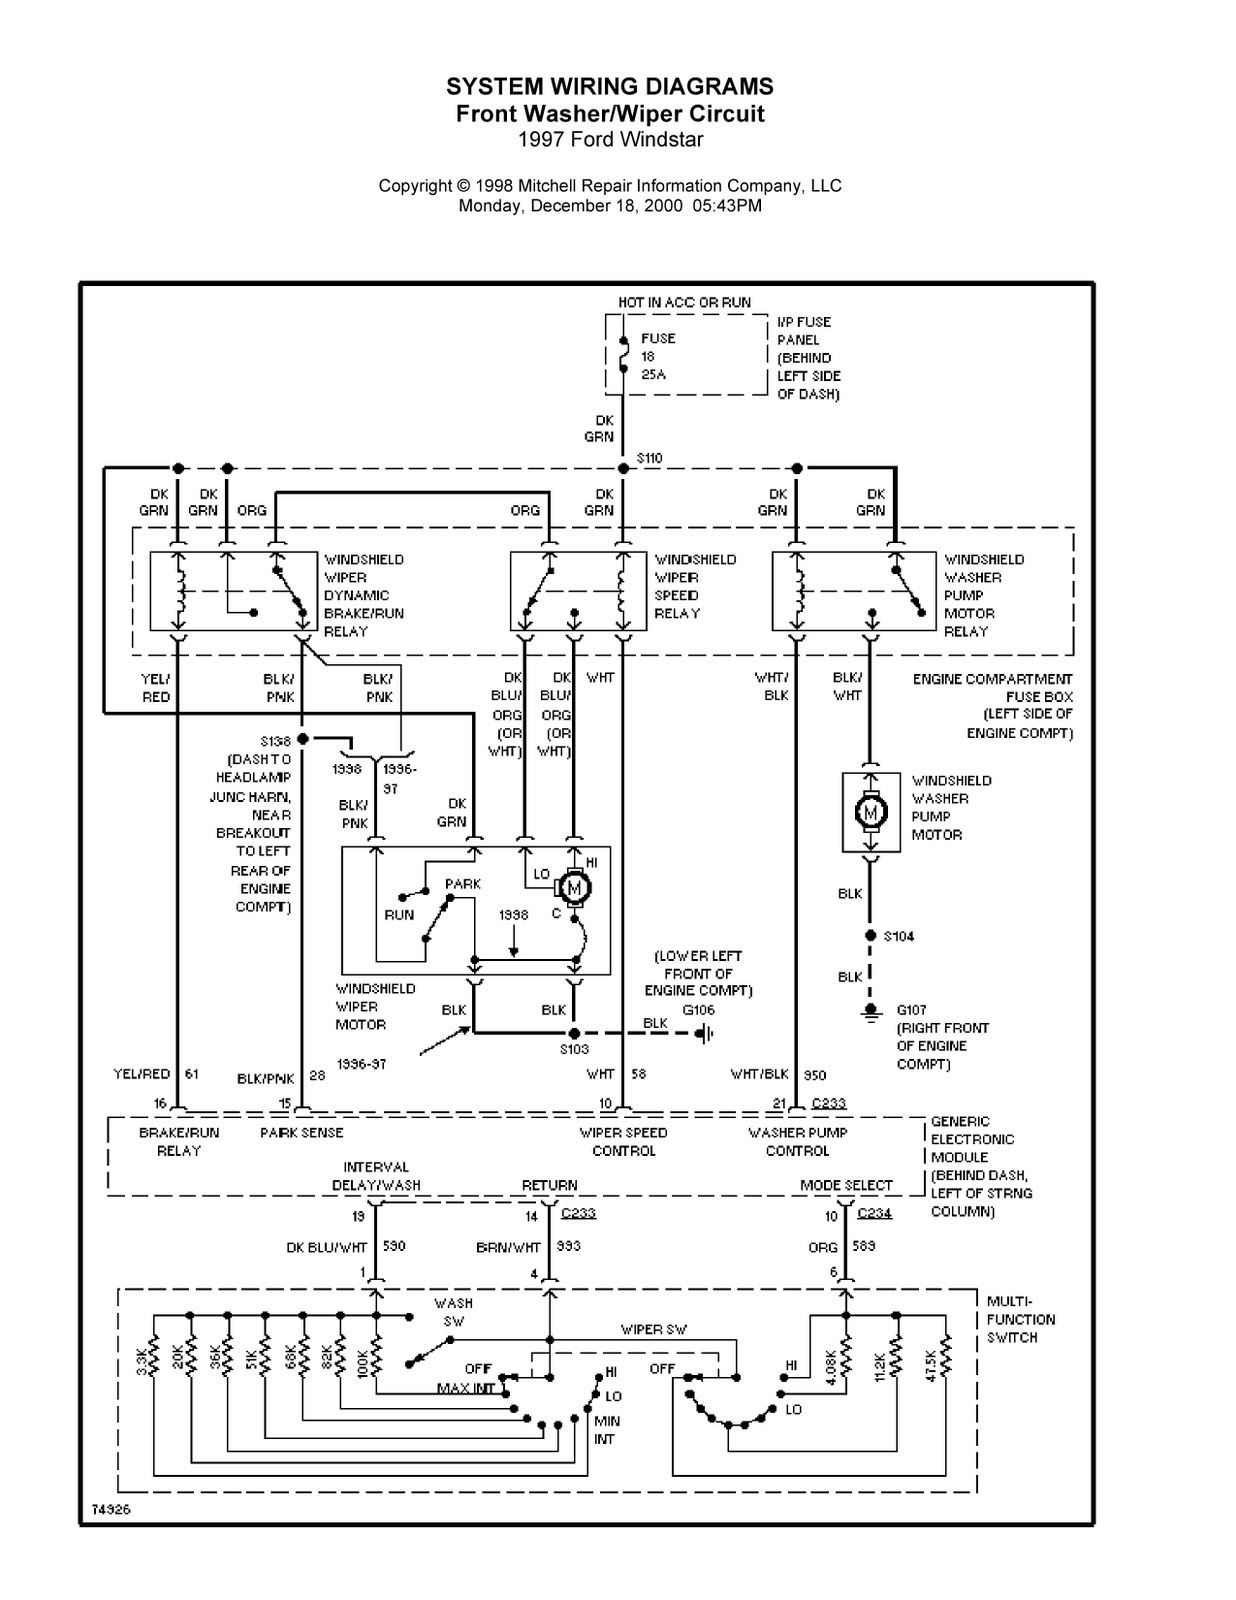 0051 1997 ford windstar complete system wiring diagrams wiring Universal Wiper Motor Wiring Diagram at gsmportal.co